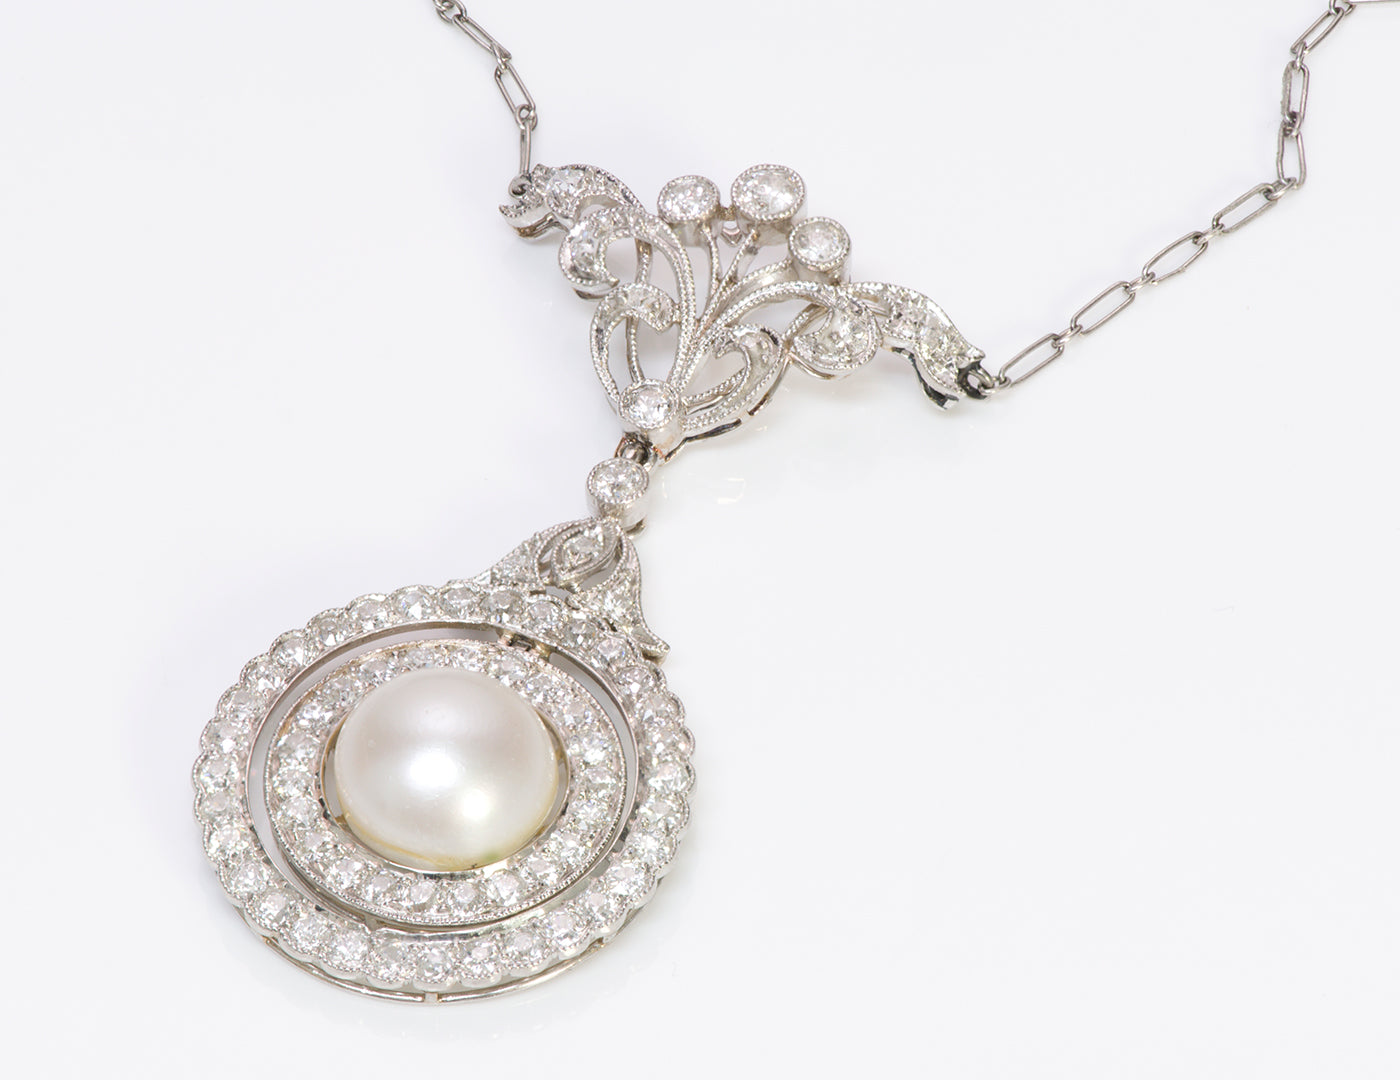 Antique Edwardian Platinum Diamond Pearl Pendant